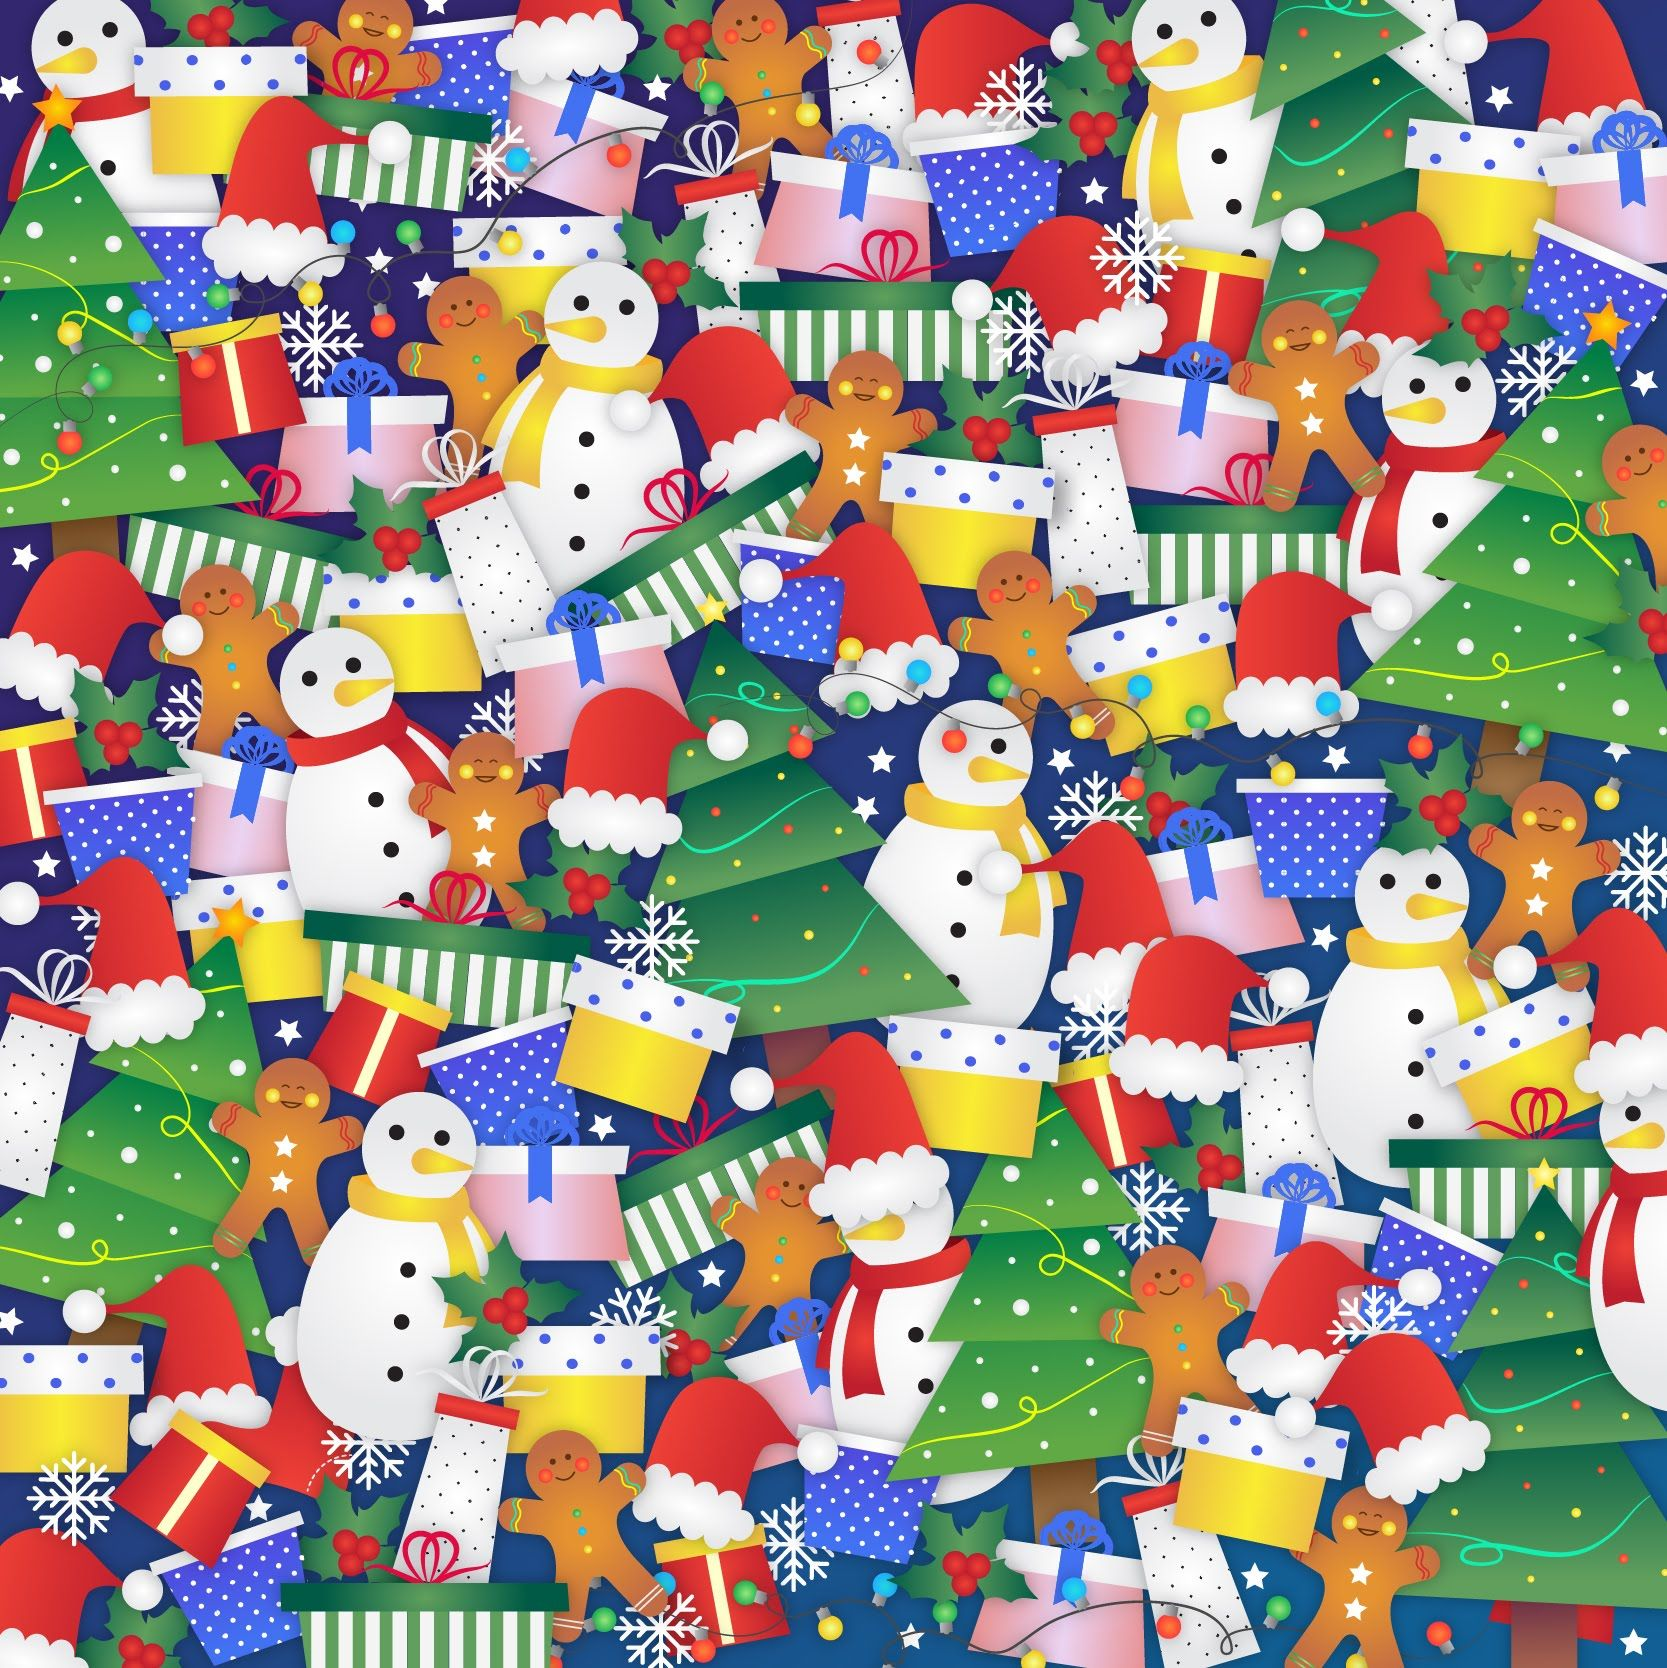 Christmas Brain Teasers For Adults.Can You Spot The Hidden Stocking In This Festive Christmas